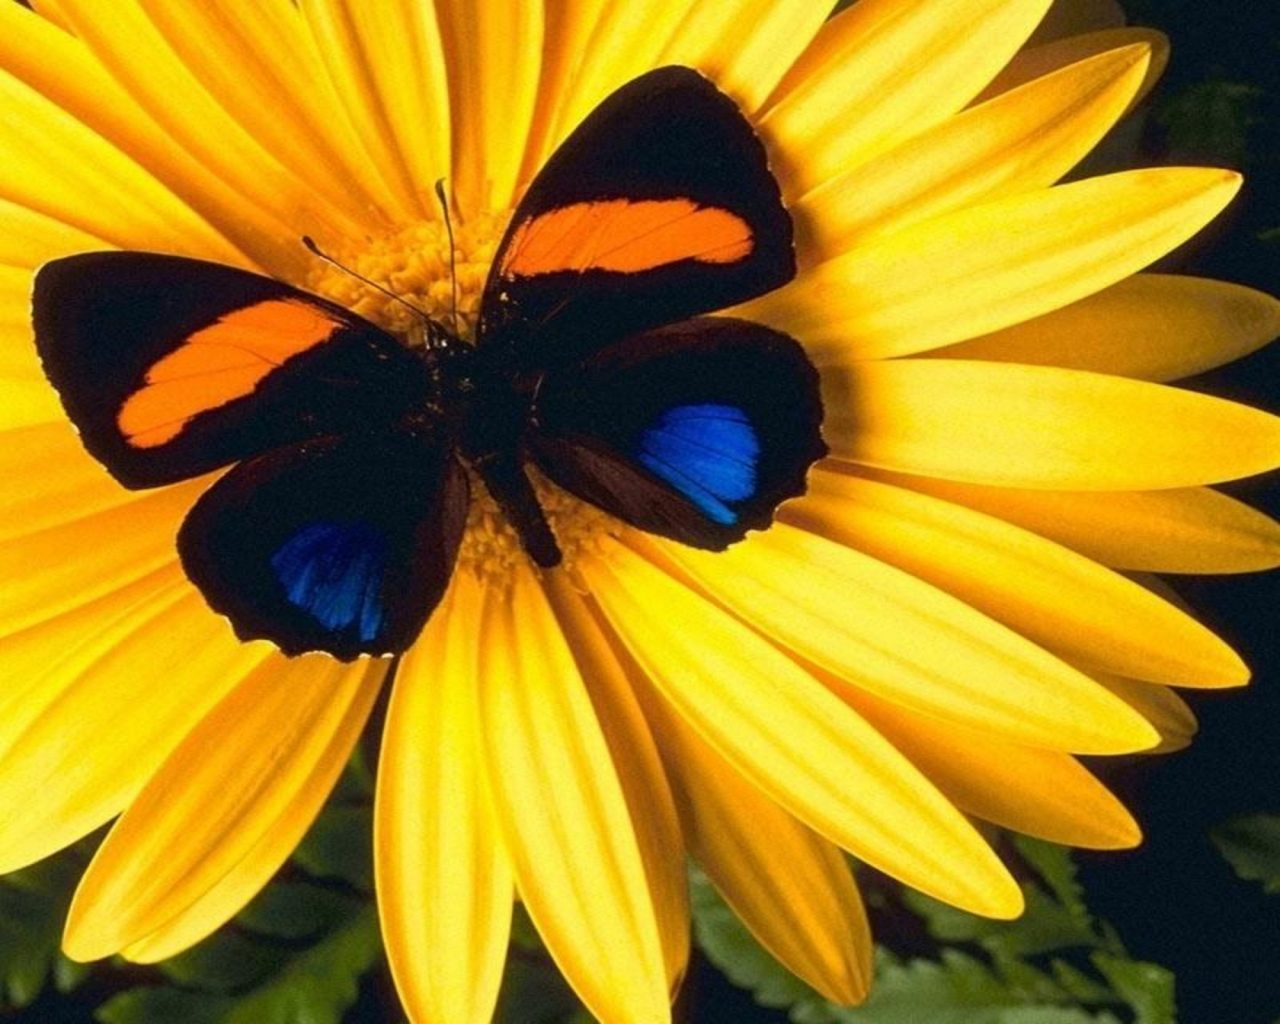 Butterfly Sitting On A Flower , HD Wallpaper & Backgrounds